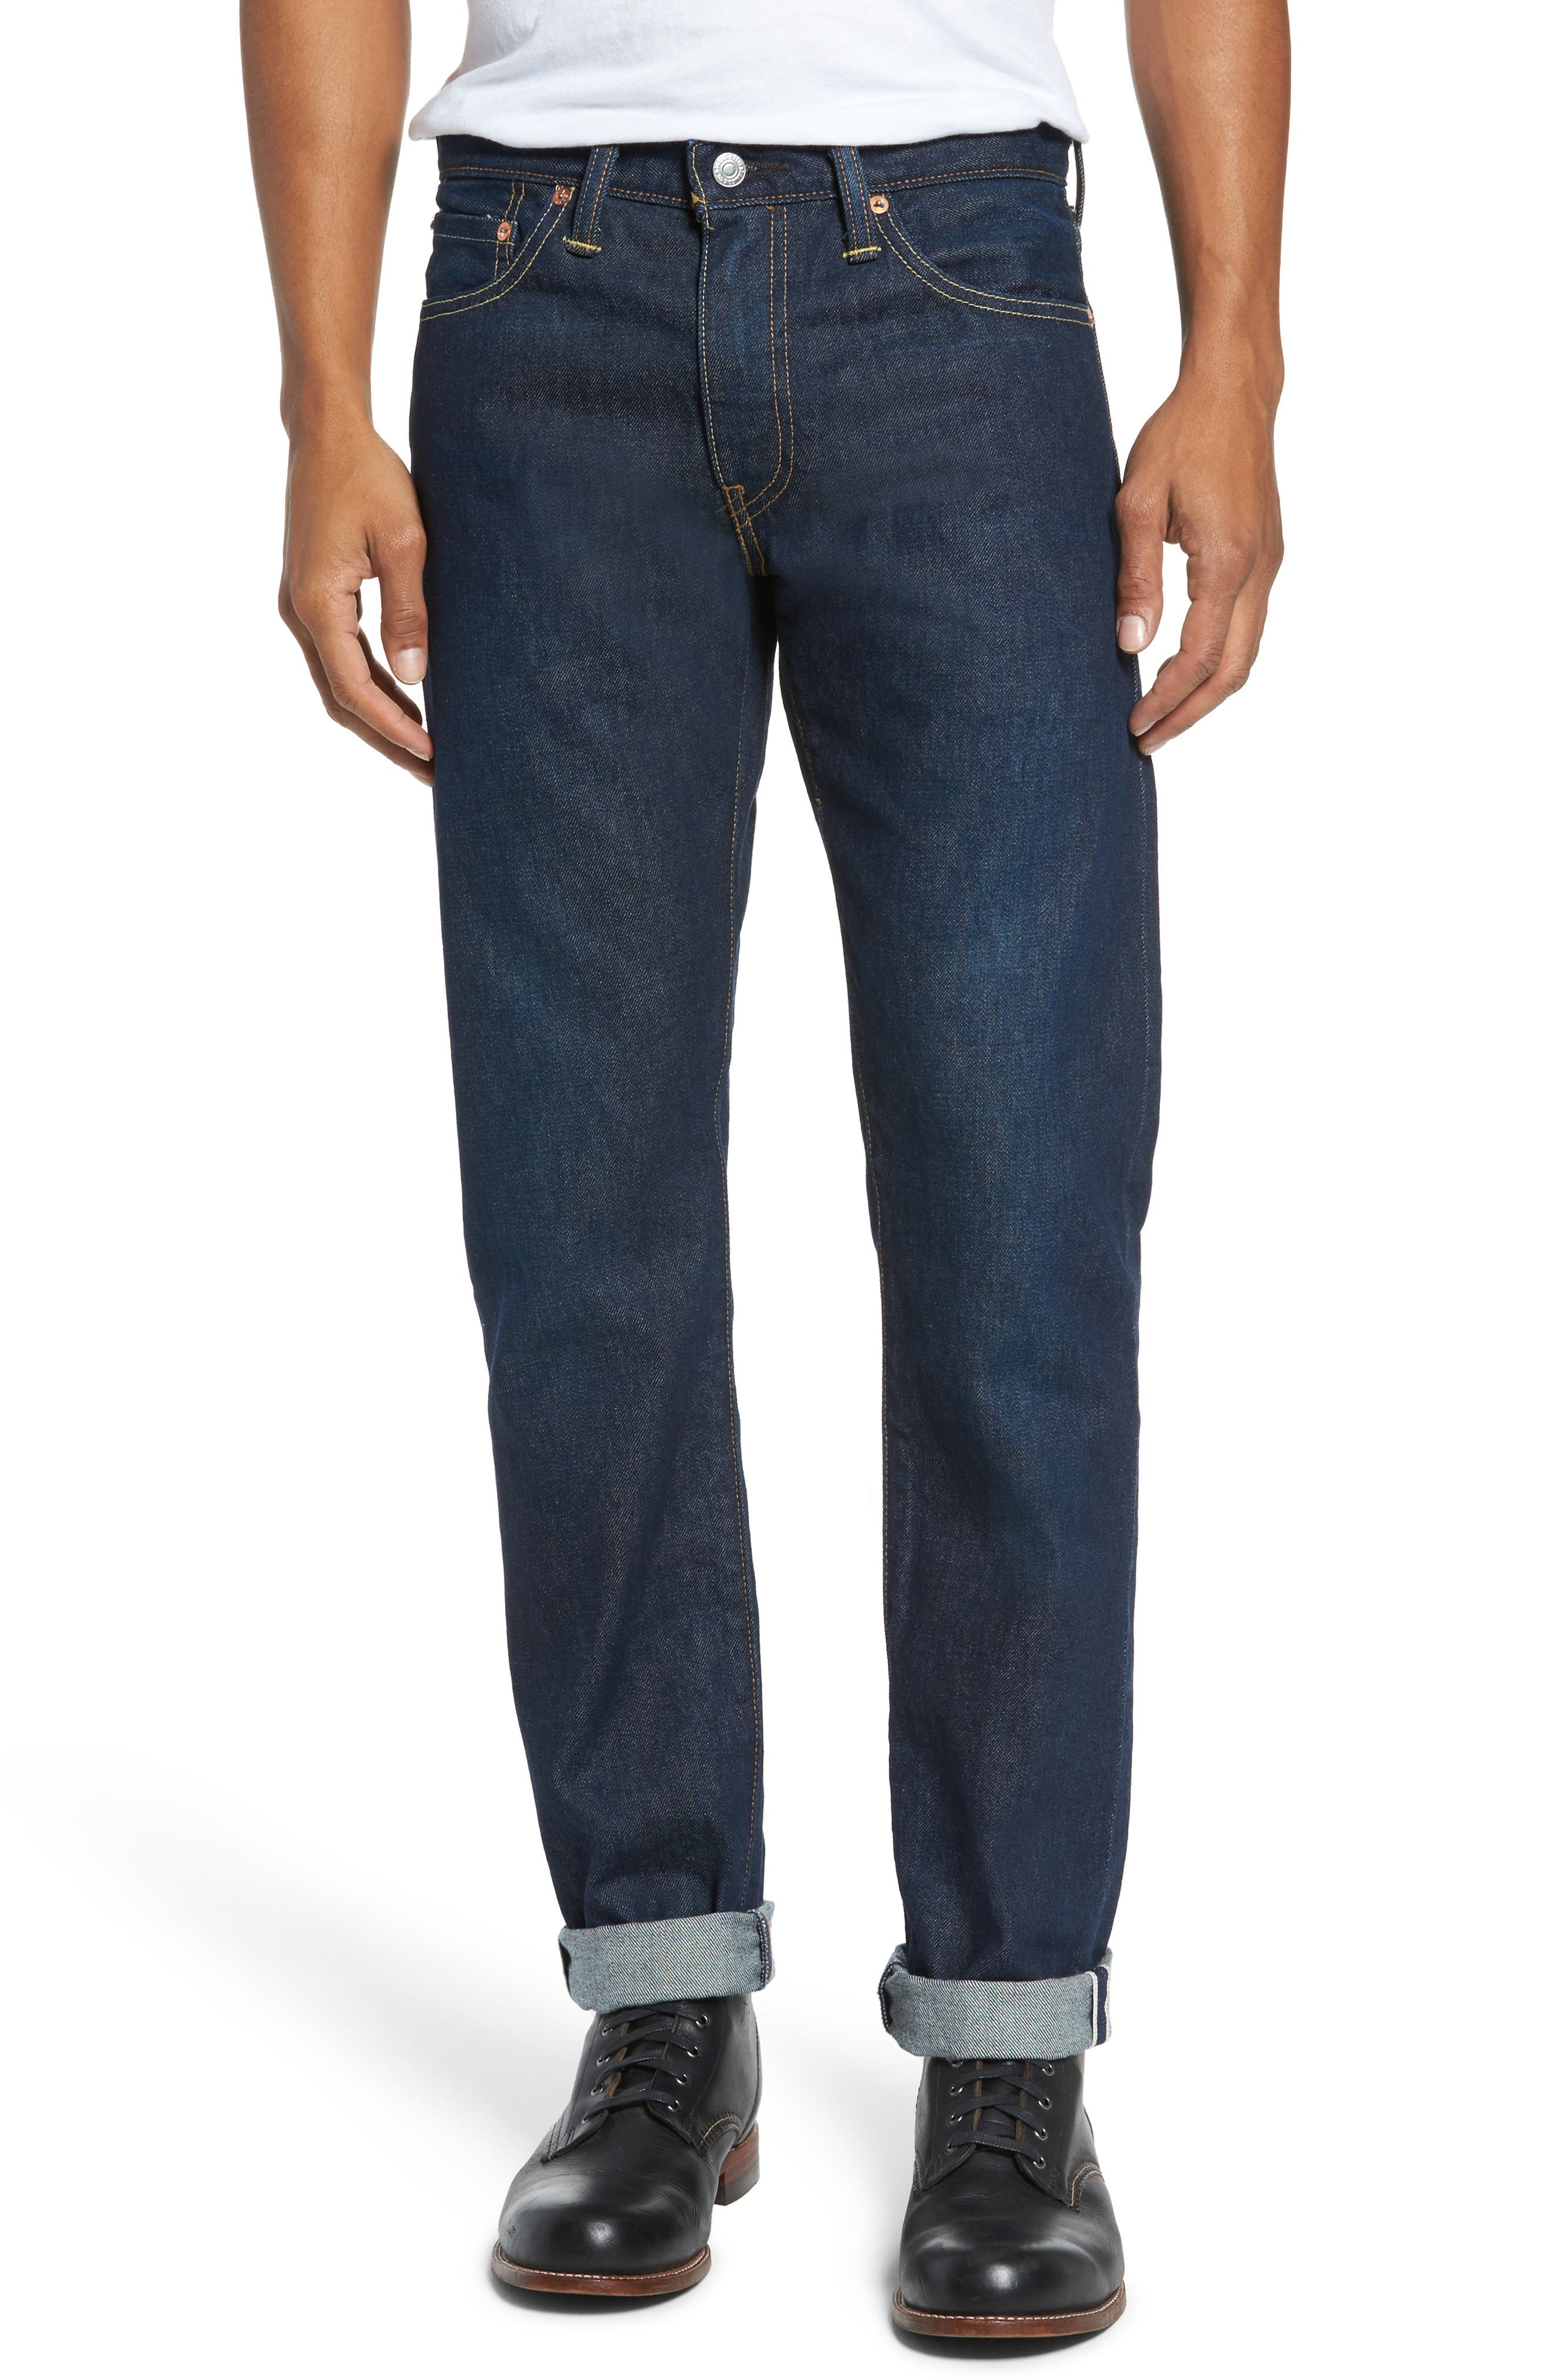 Alternate Image 1 Selected - Levi's® 511™ Slim Fit Jeans (Selvedge)